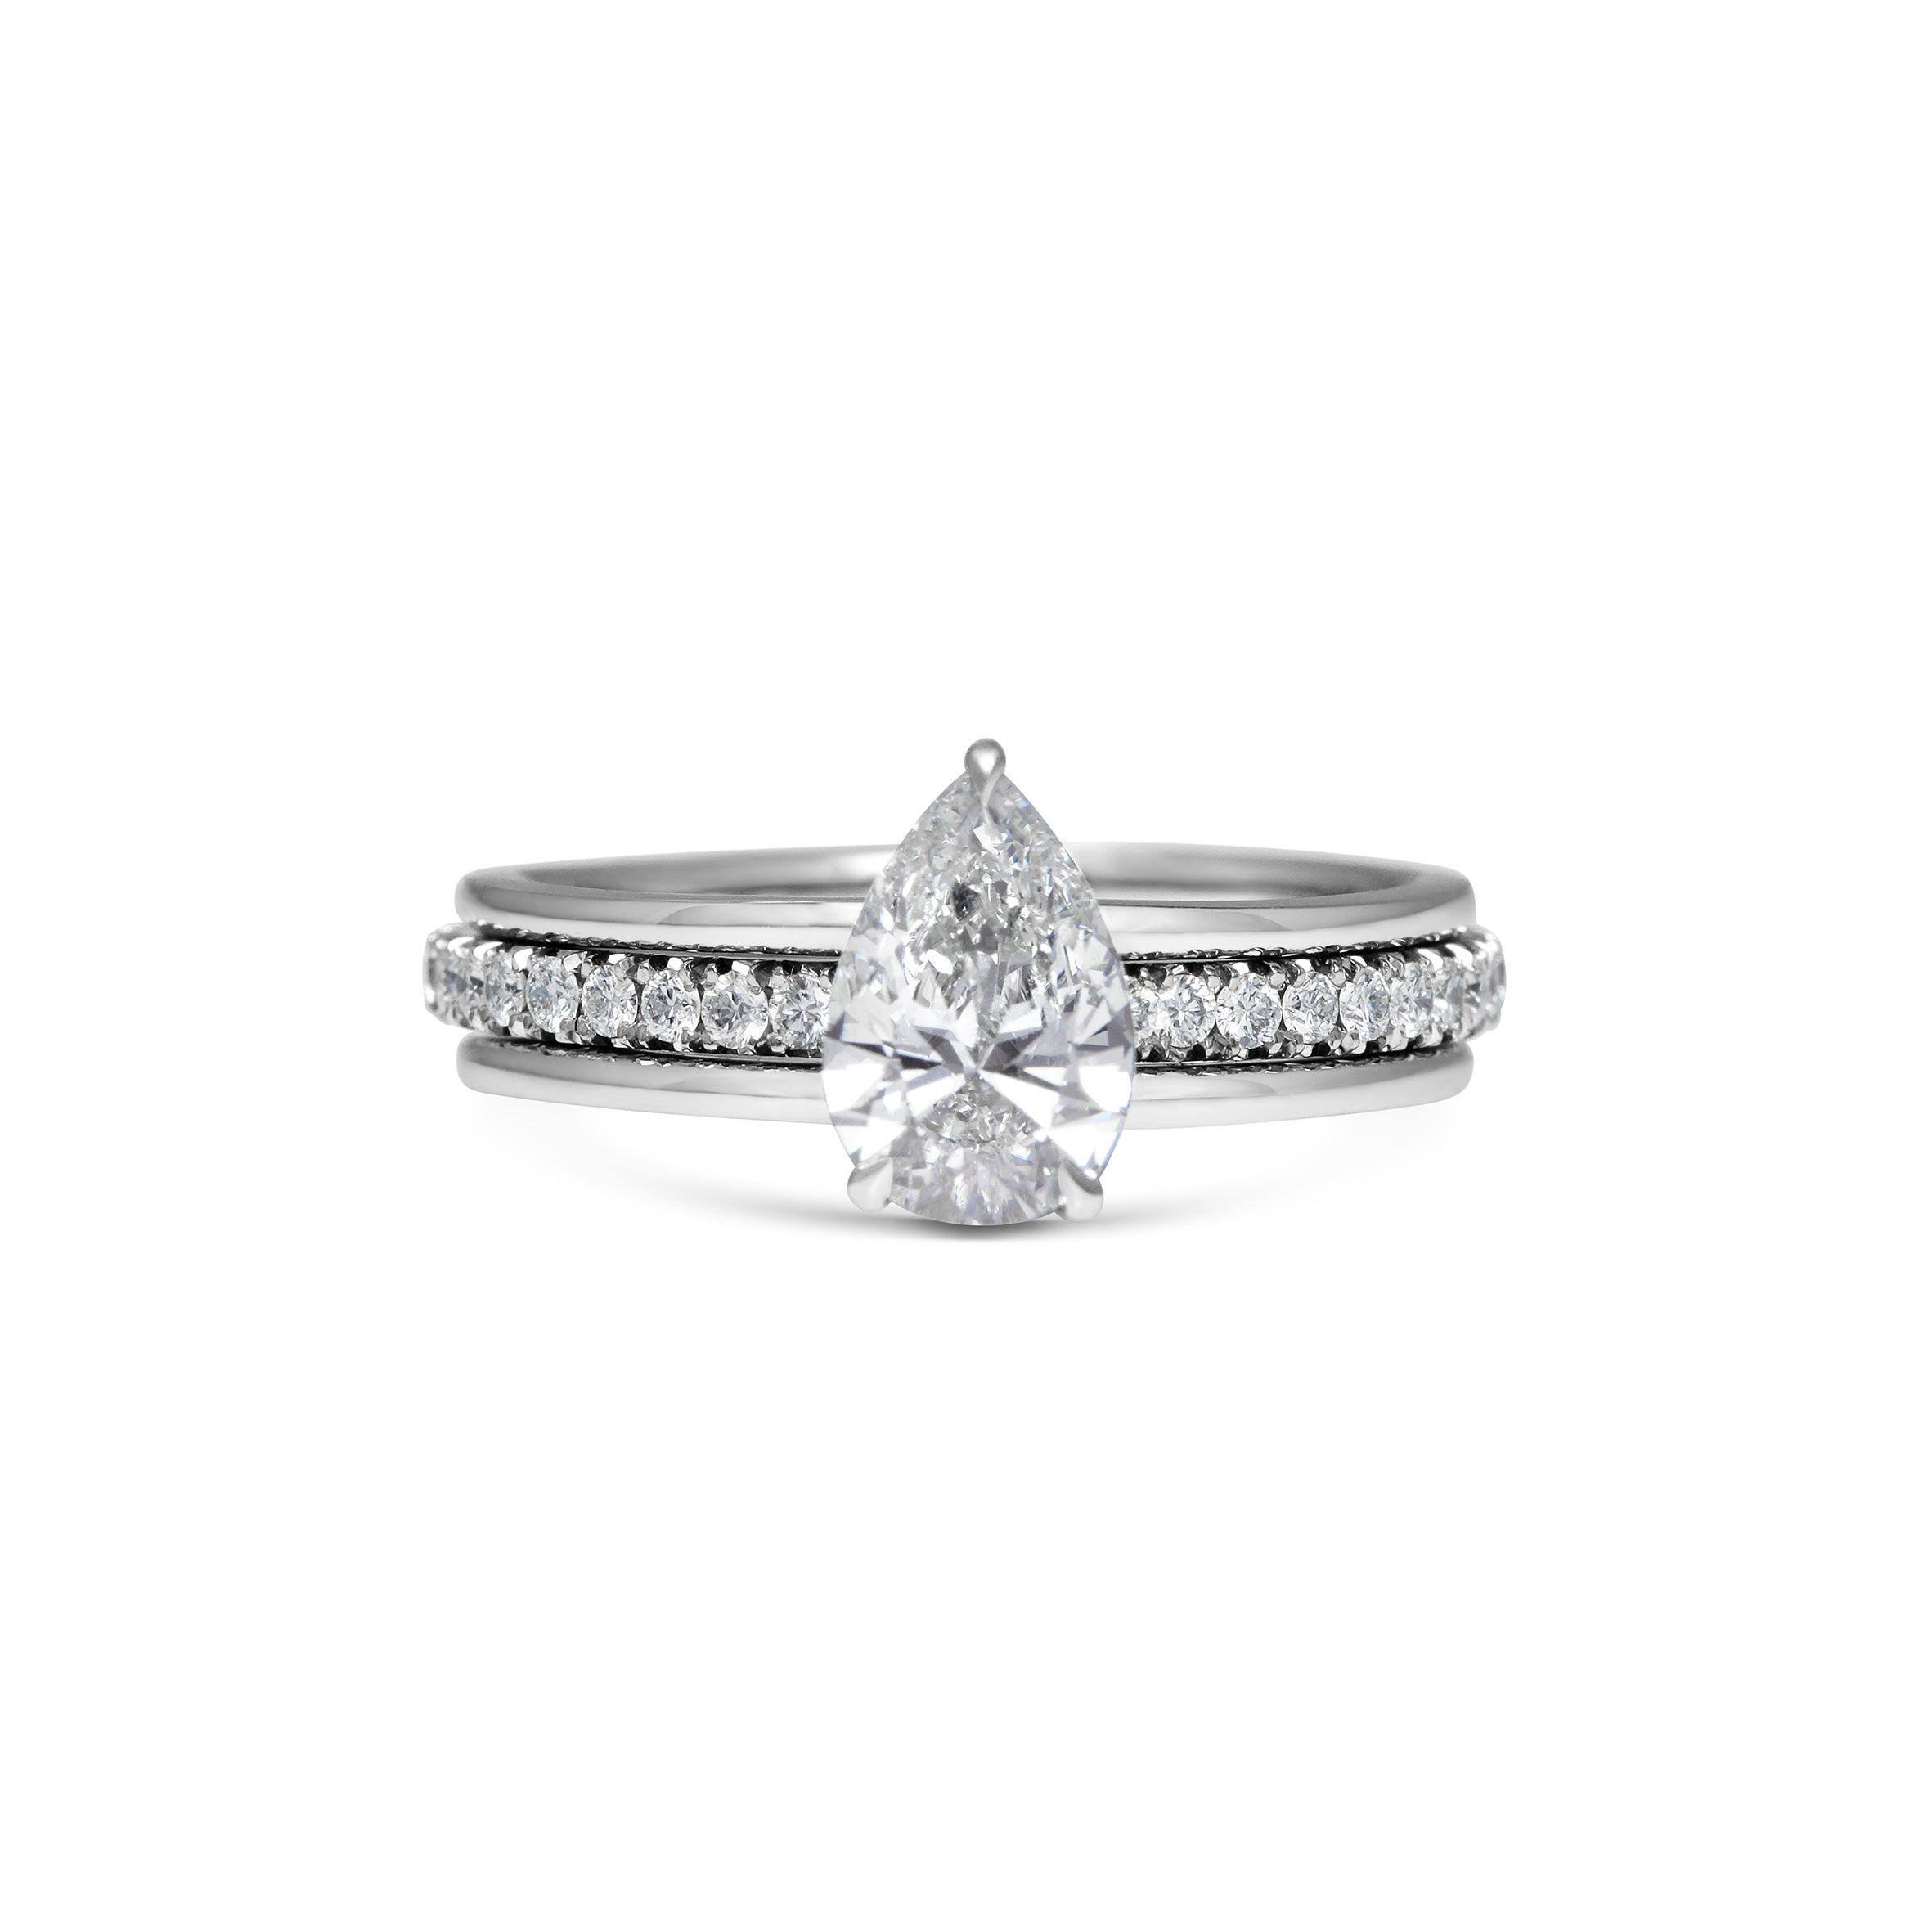 1ct Pear Diamond Platinum Engagement Ring